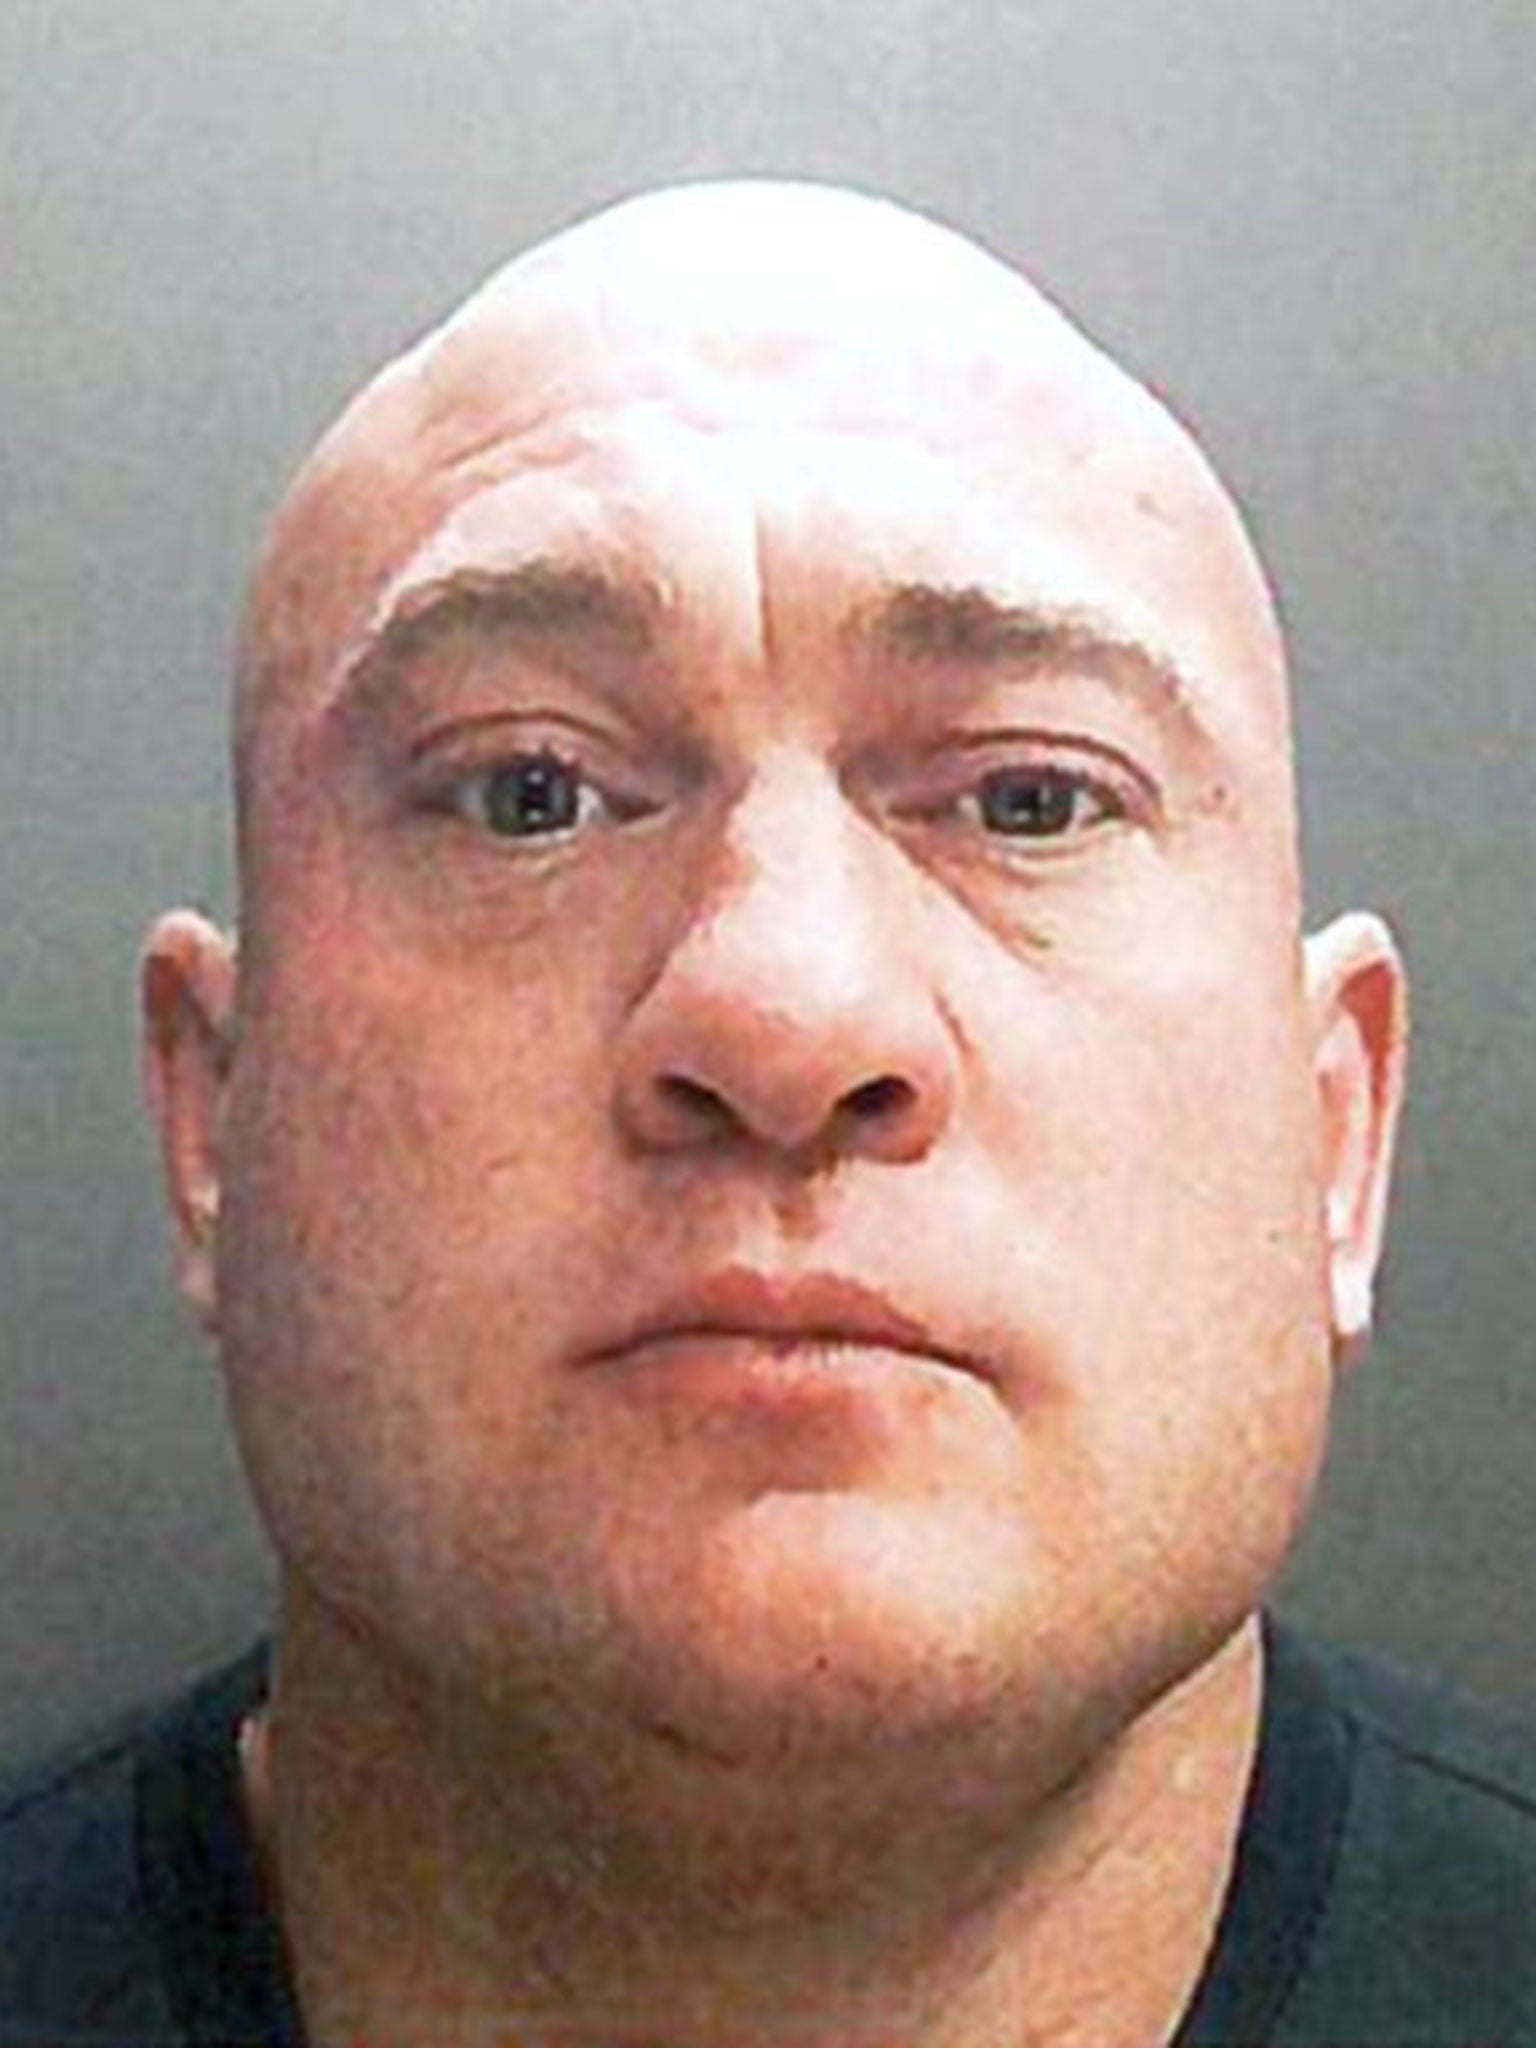 One of Britain's biggest drug dealers convicted of running